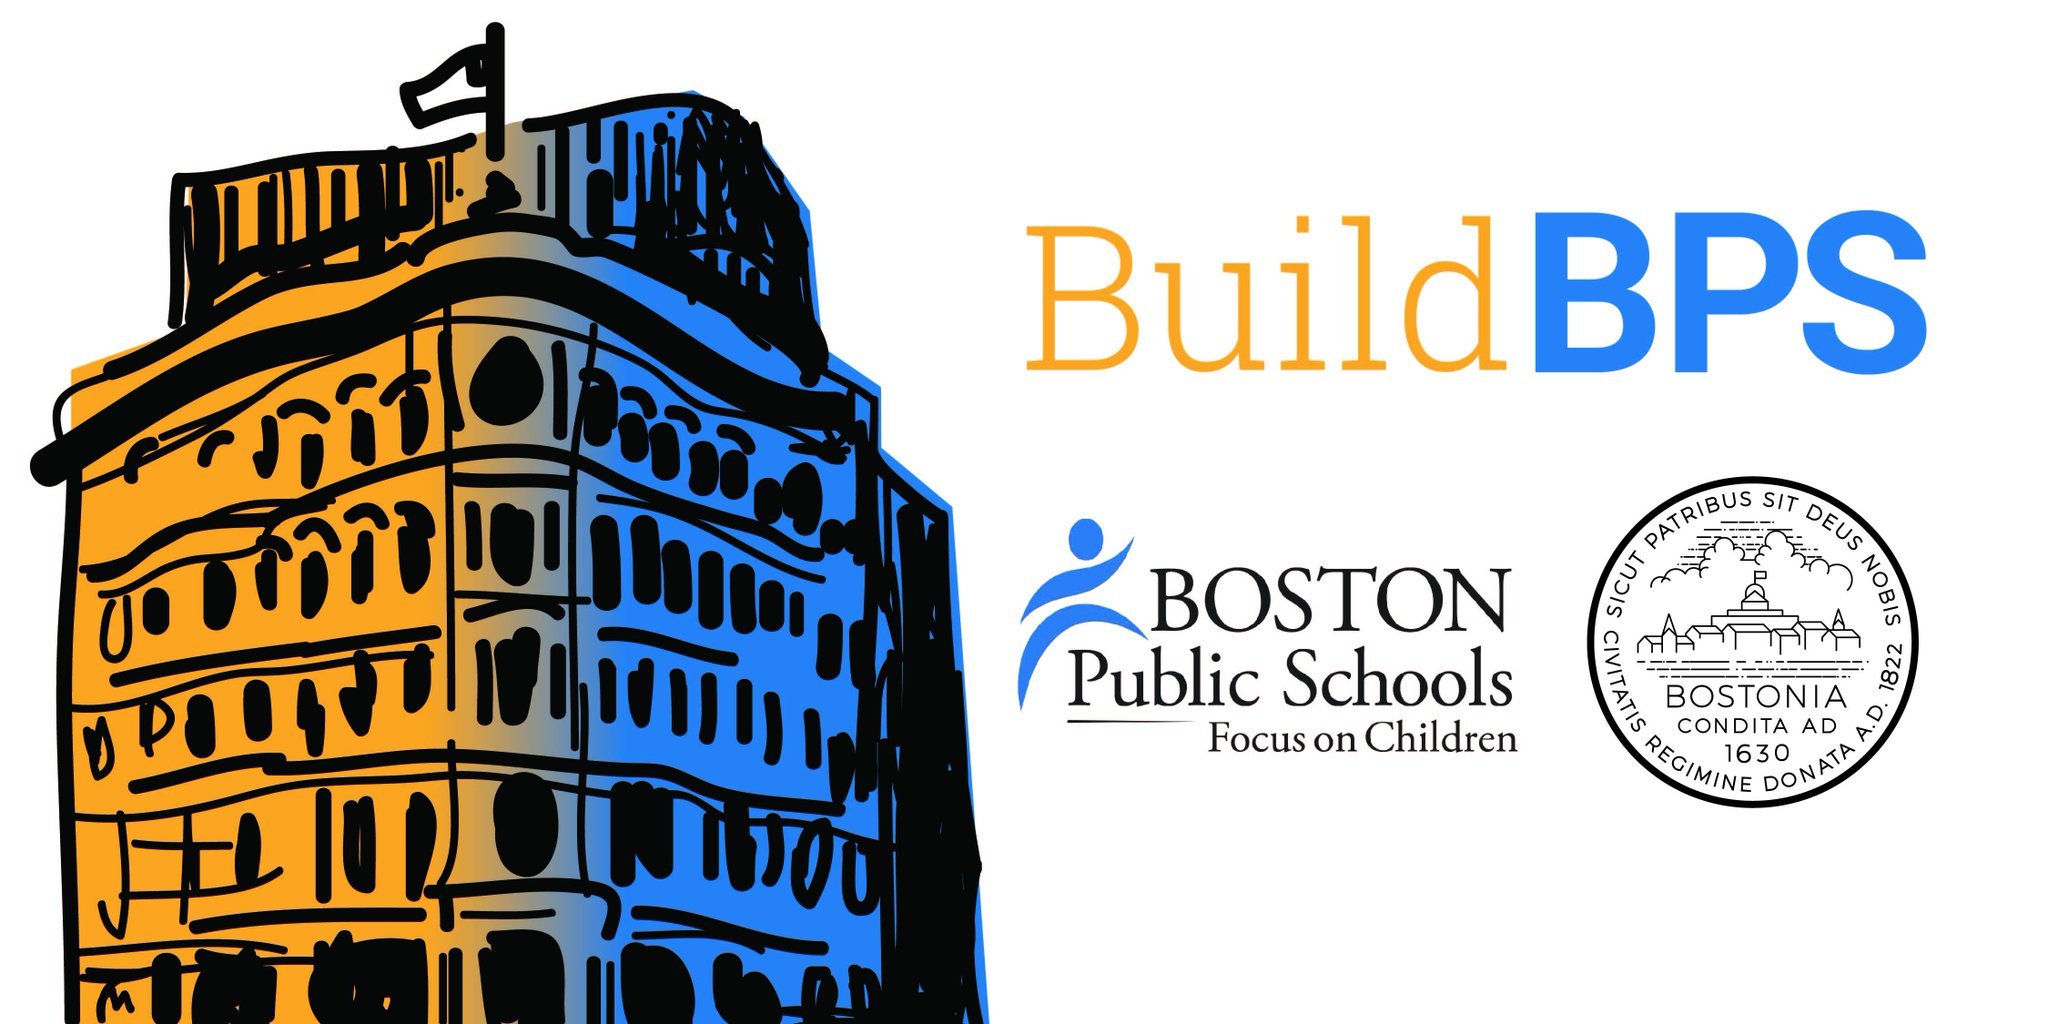 Planning to attend our #BuildBPS Open House in October? Let us know you're coming! https://t.co/J9OM9Y5mLM https://t.co/cQLeQuRNpz